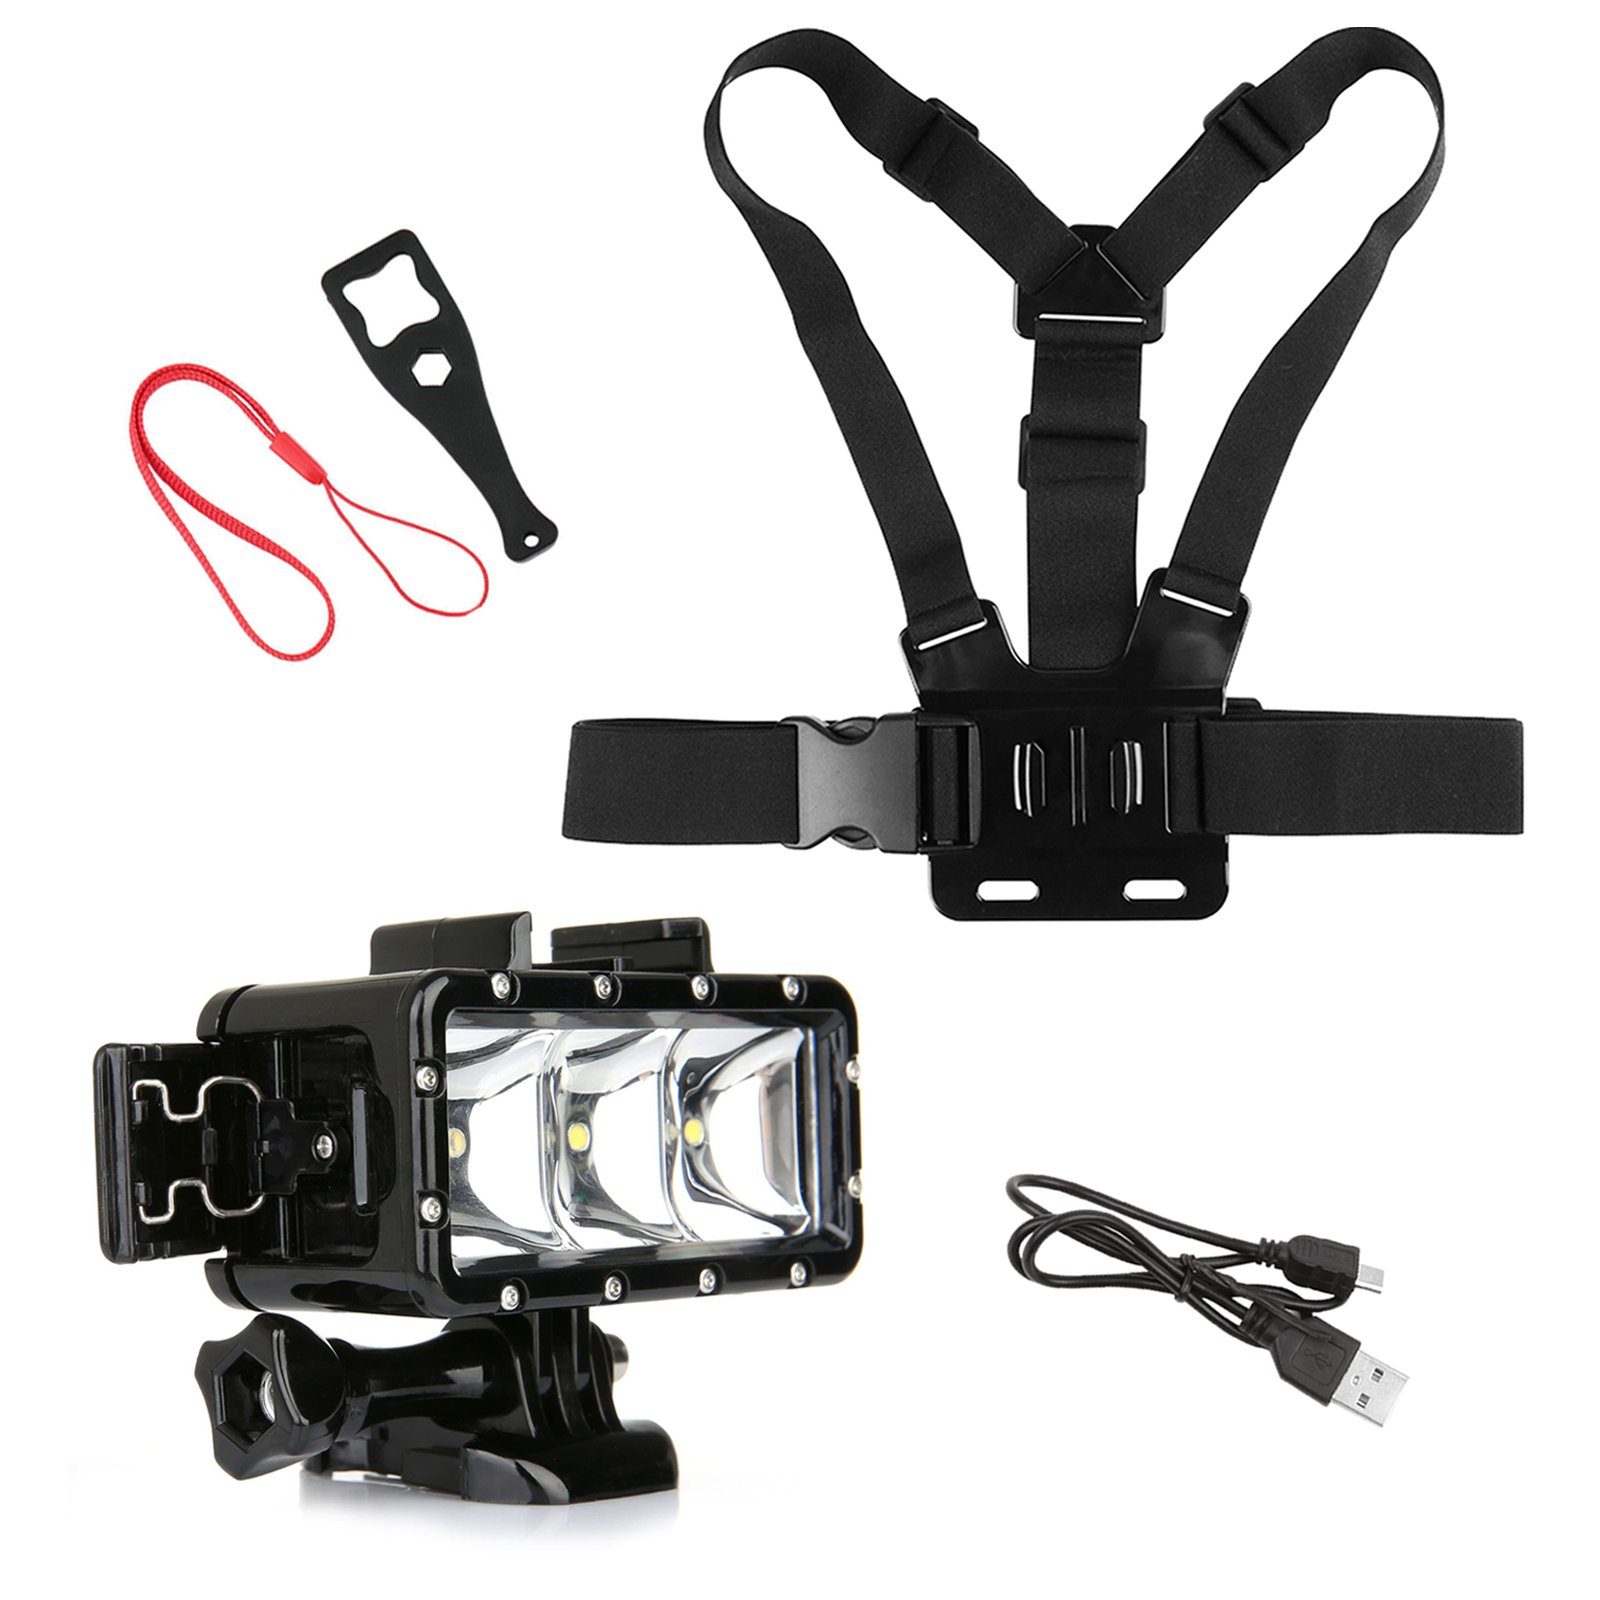 SHOOT Outdoor Diving Light Accessories Kit for GoPro Hero 6/5/4/3+/3/5 Session/4 Session/HERO(2018)/Fusion AKASO DBPOWER Crosstour FITFORT Camera Sports Underwater LED Flashlight Chest Strap by SHOOT